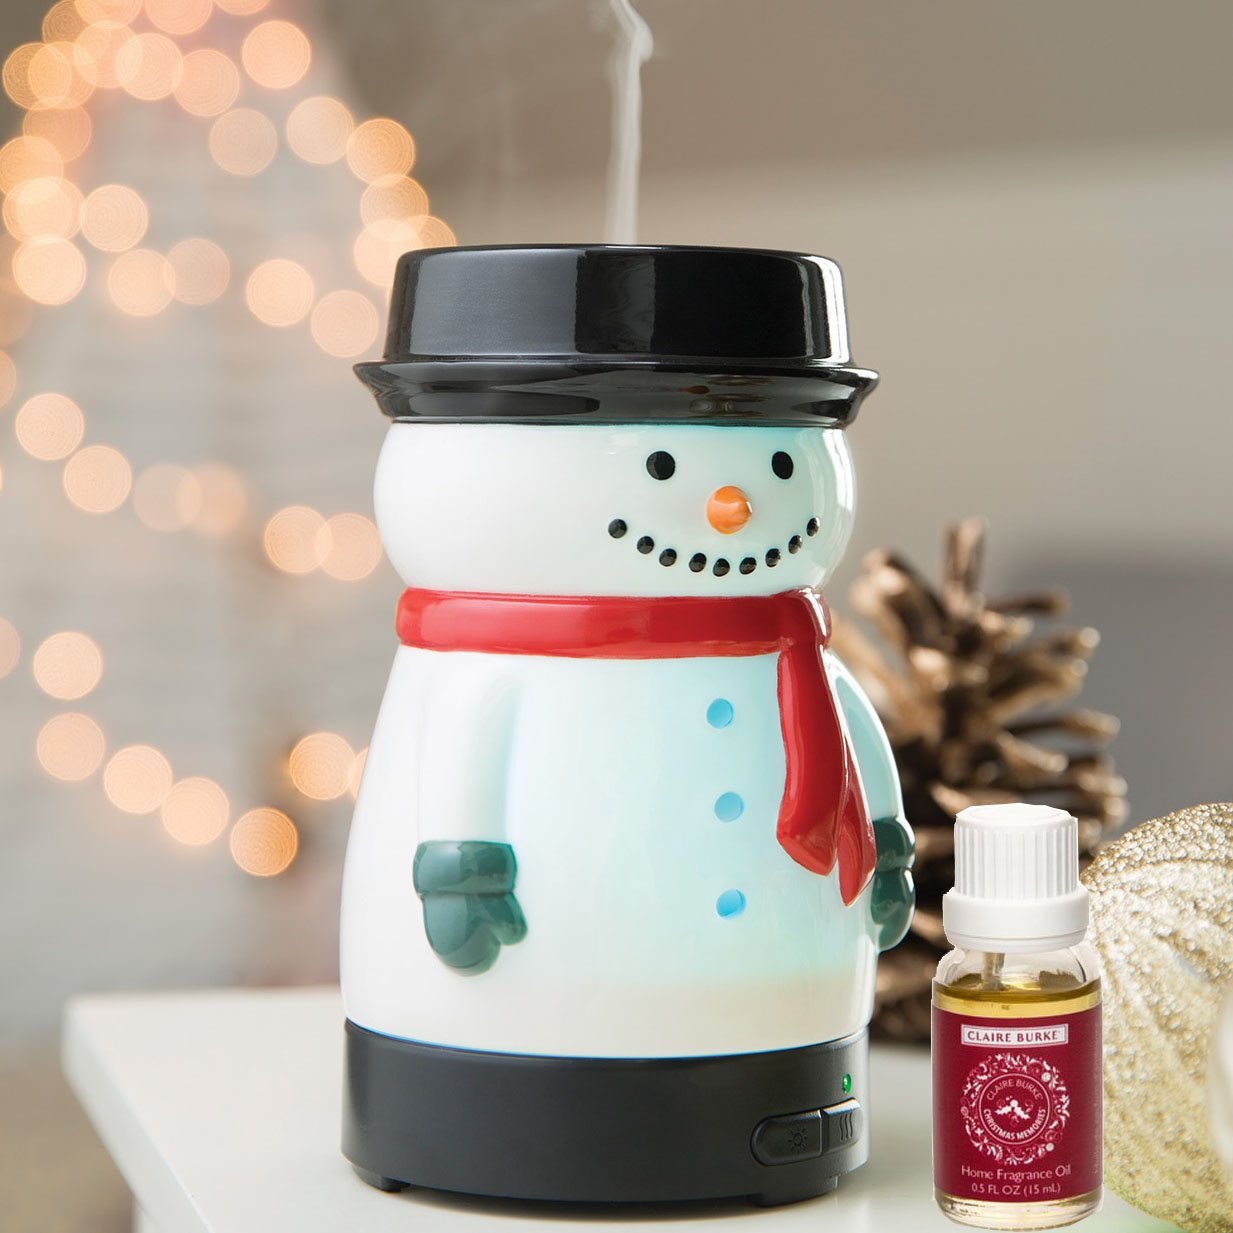 Essential Oil Diffuser Snowman by Airomé with Claire Burke Christmas Memories Fragrance Oil